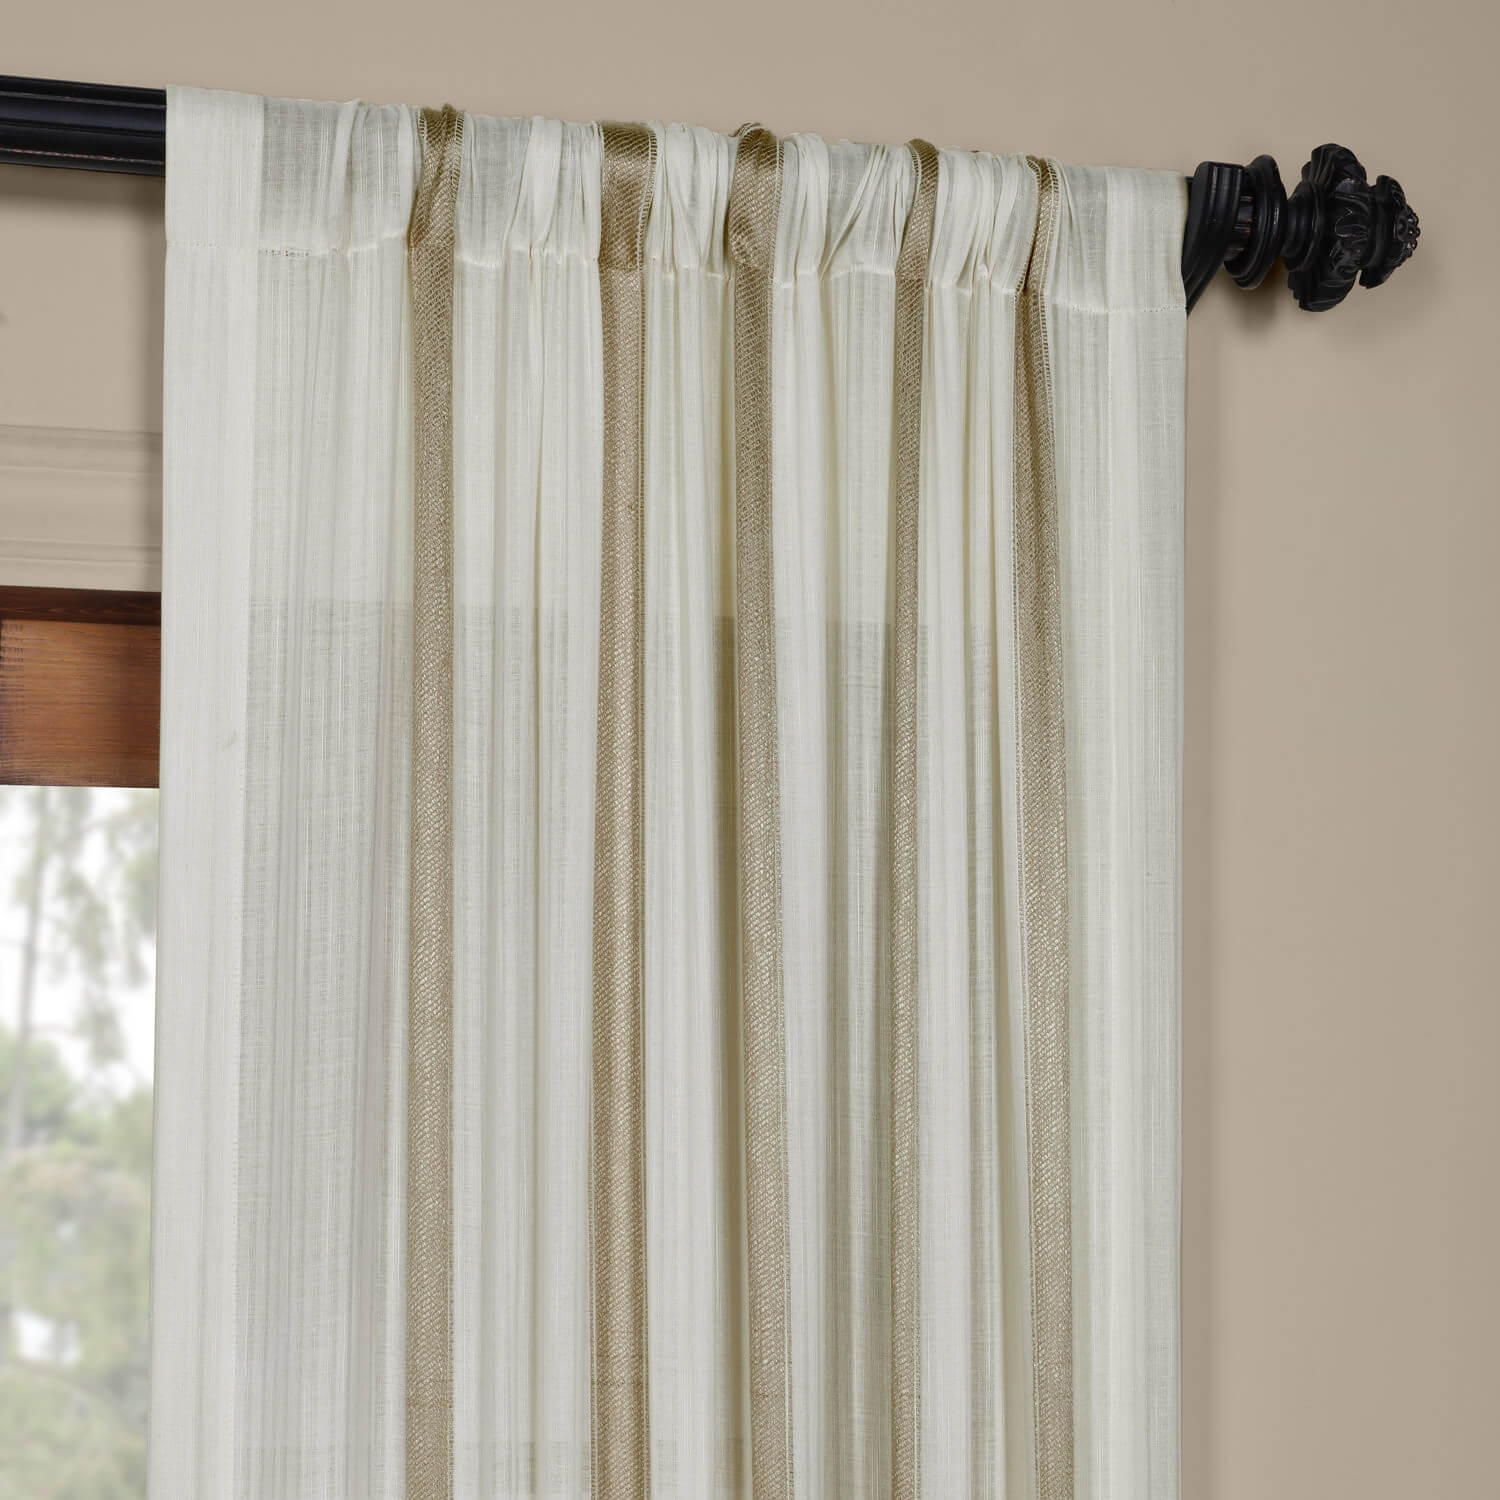 Buy Curtains Buy Antigua Gold Striped Linen Sheer Curtain And Drapes